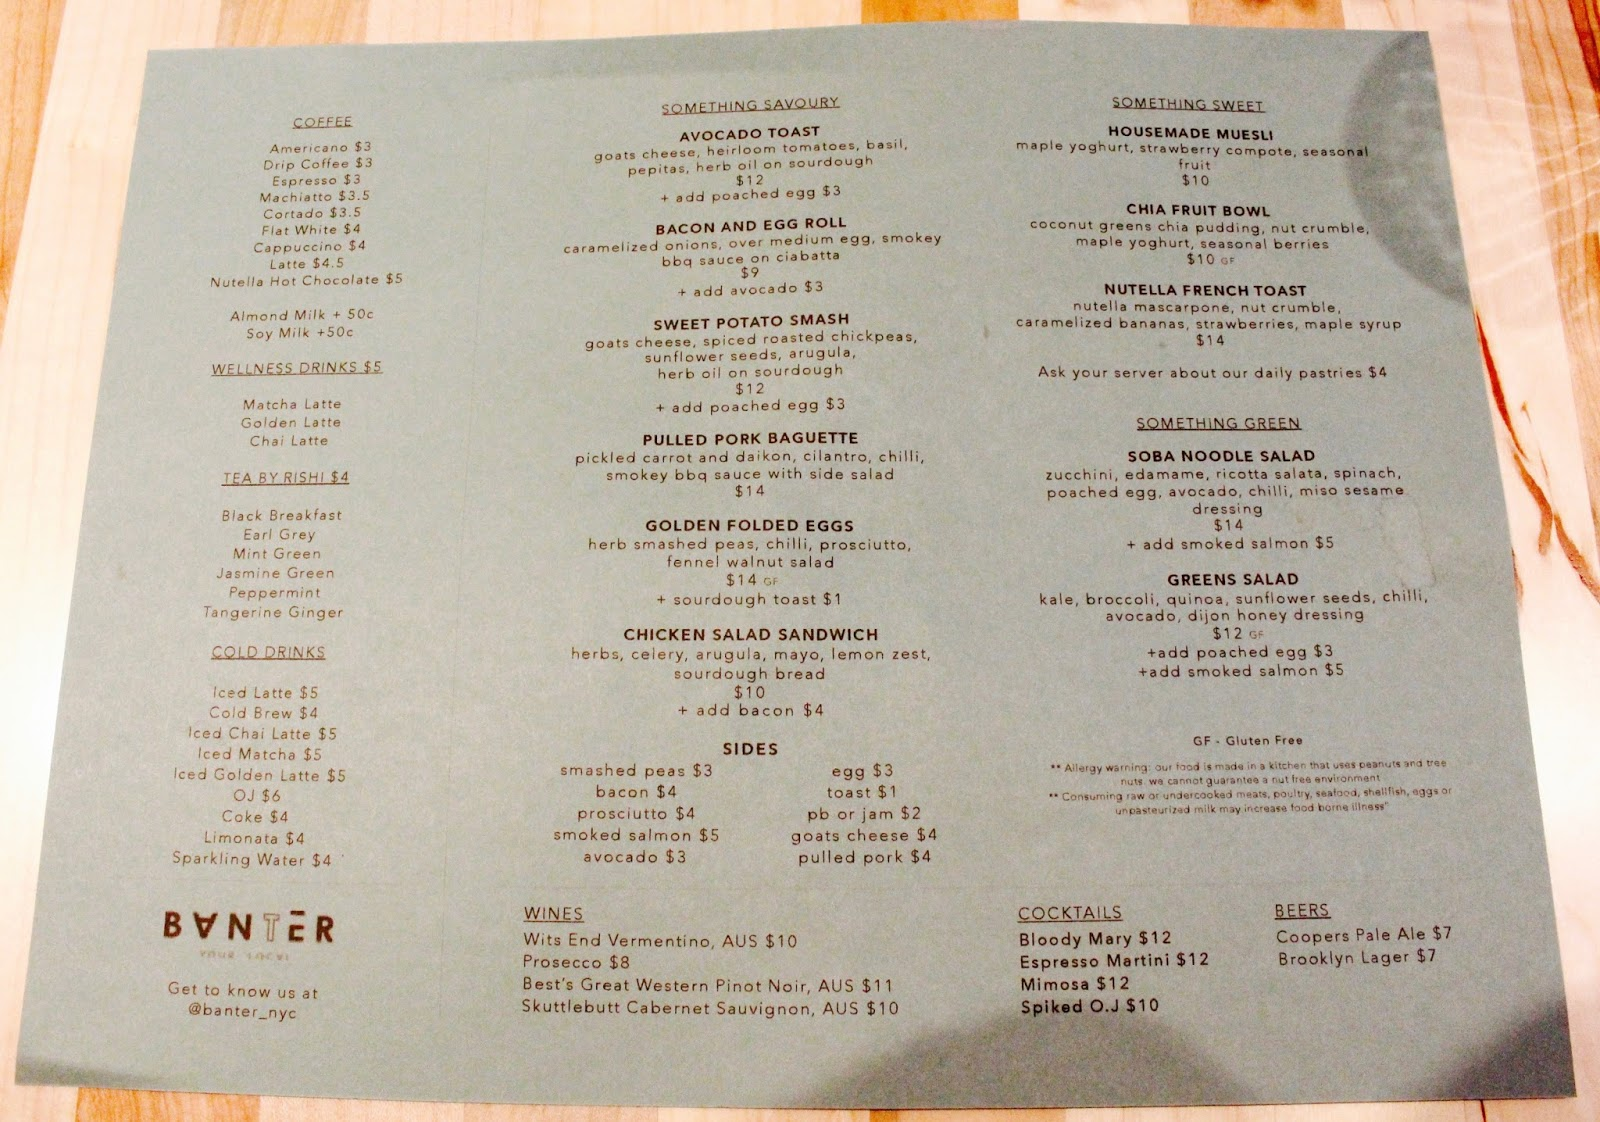 Banter Aussie Brunch Menu NYC | New York Sullivan Street